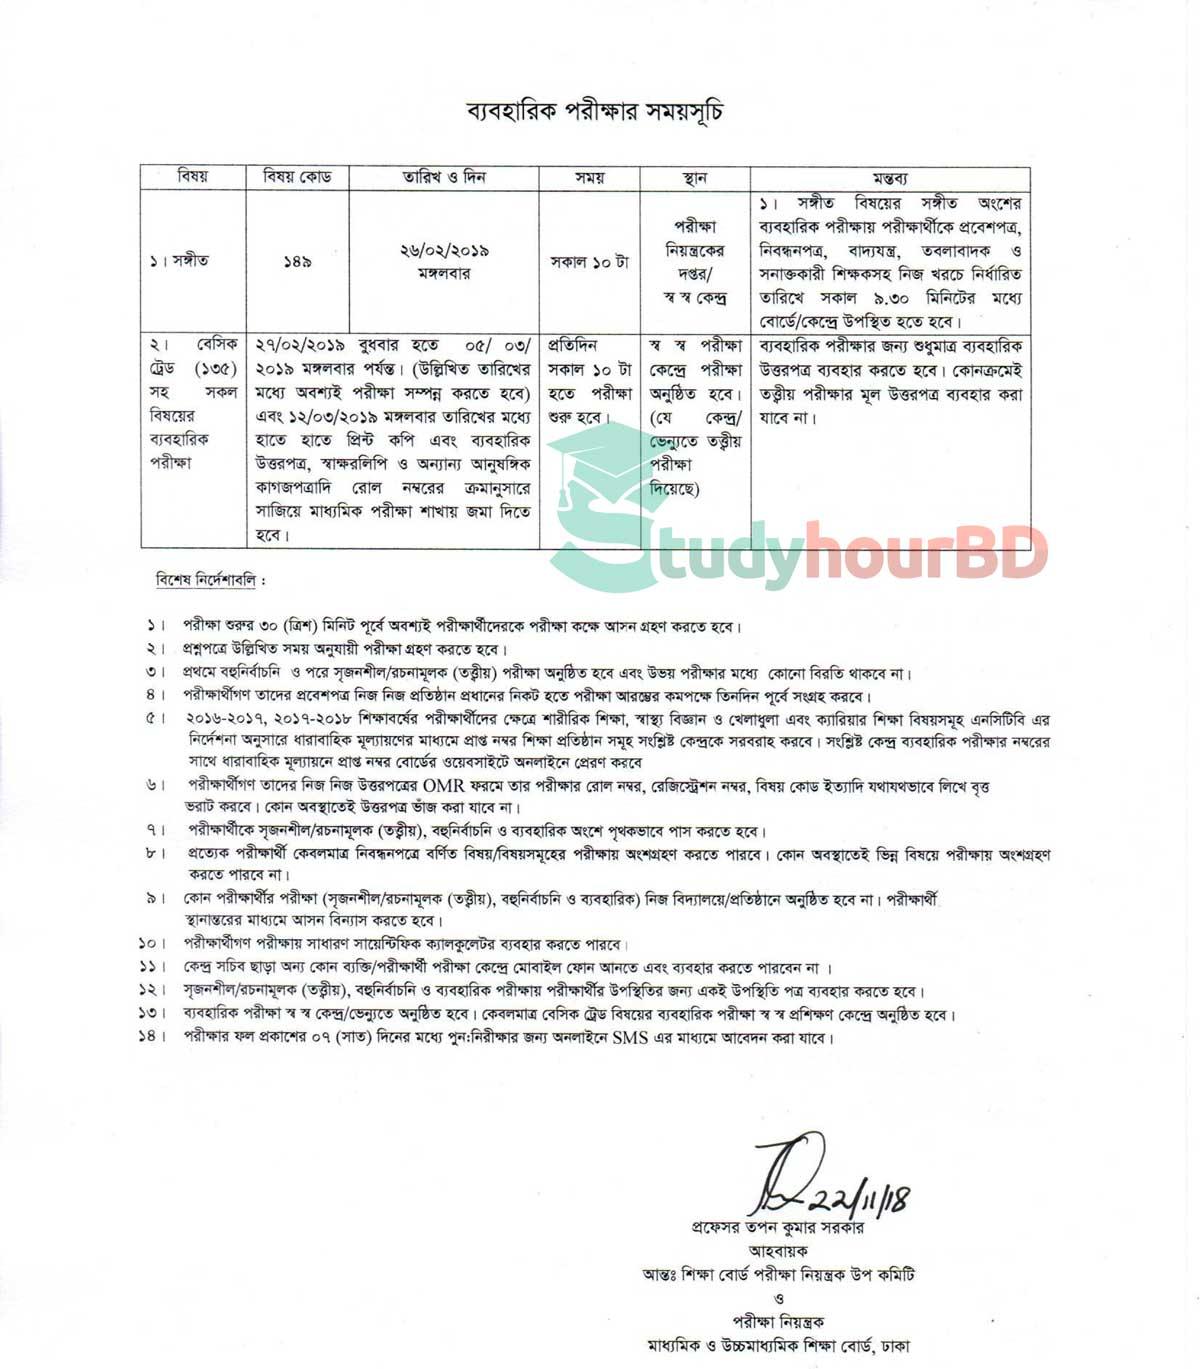 SSC Routine 2019 part 2